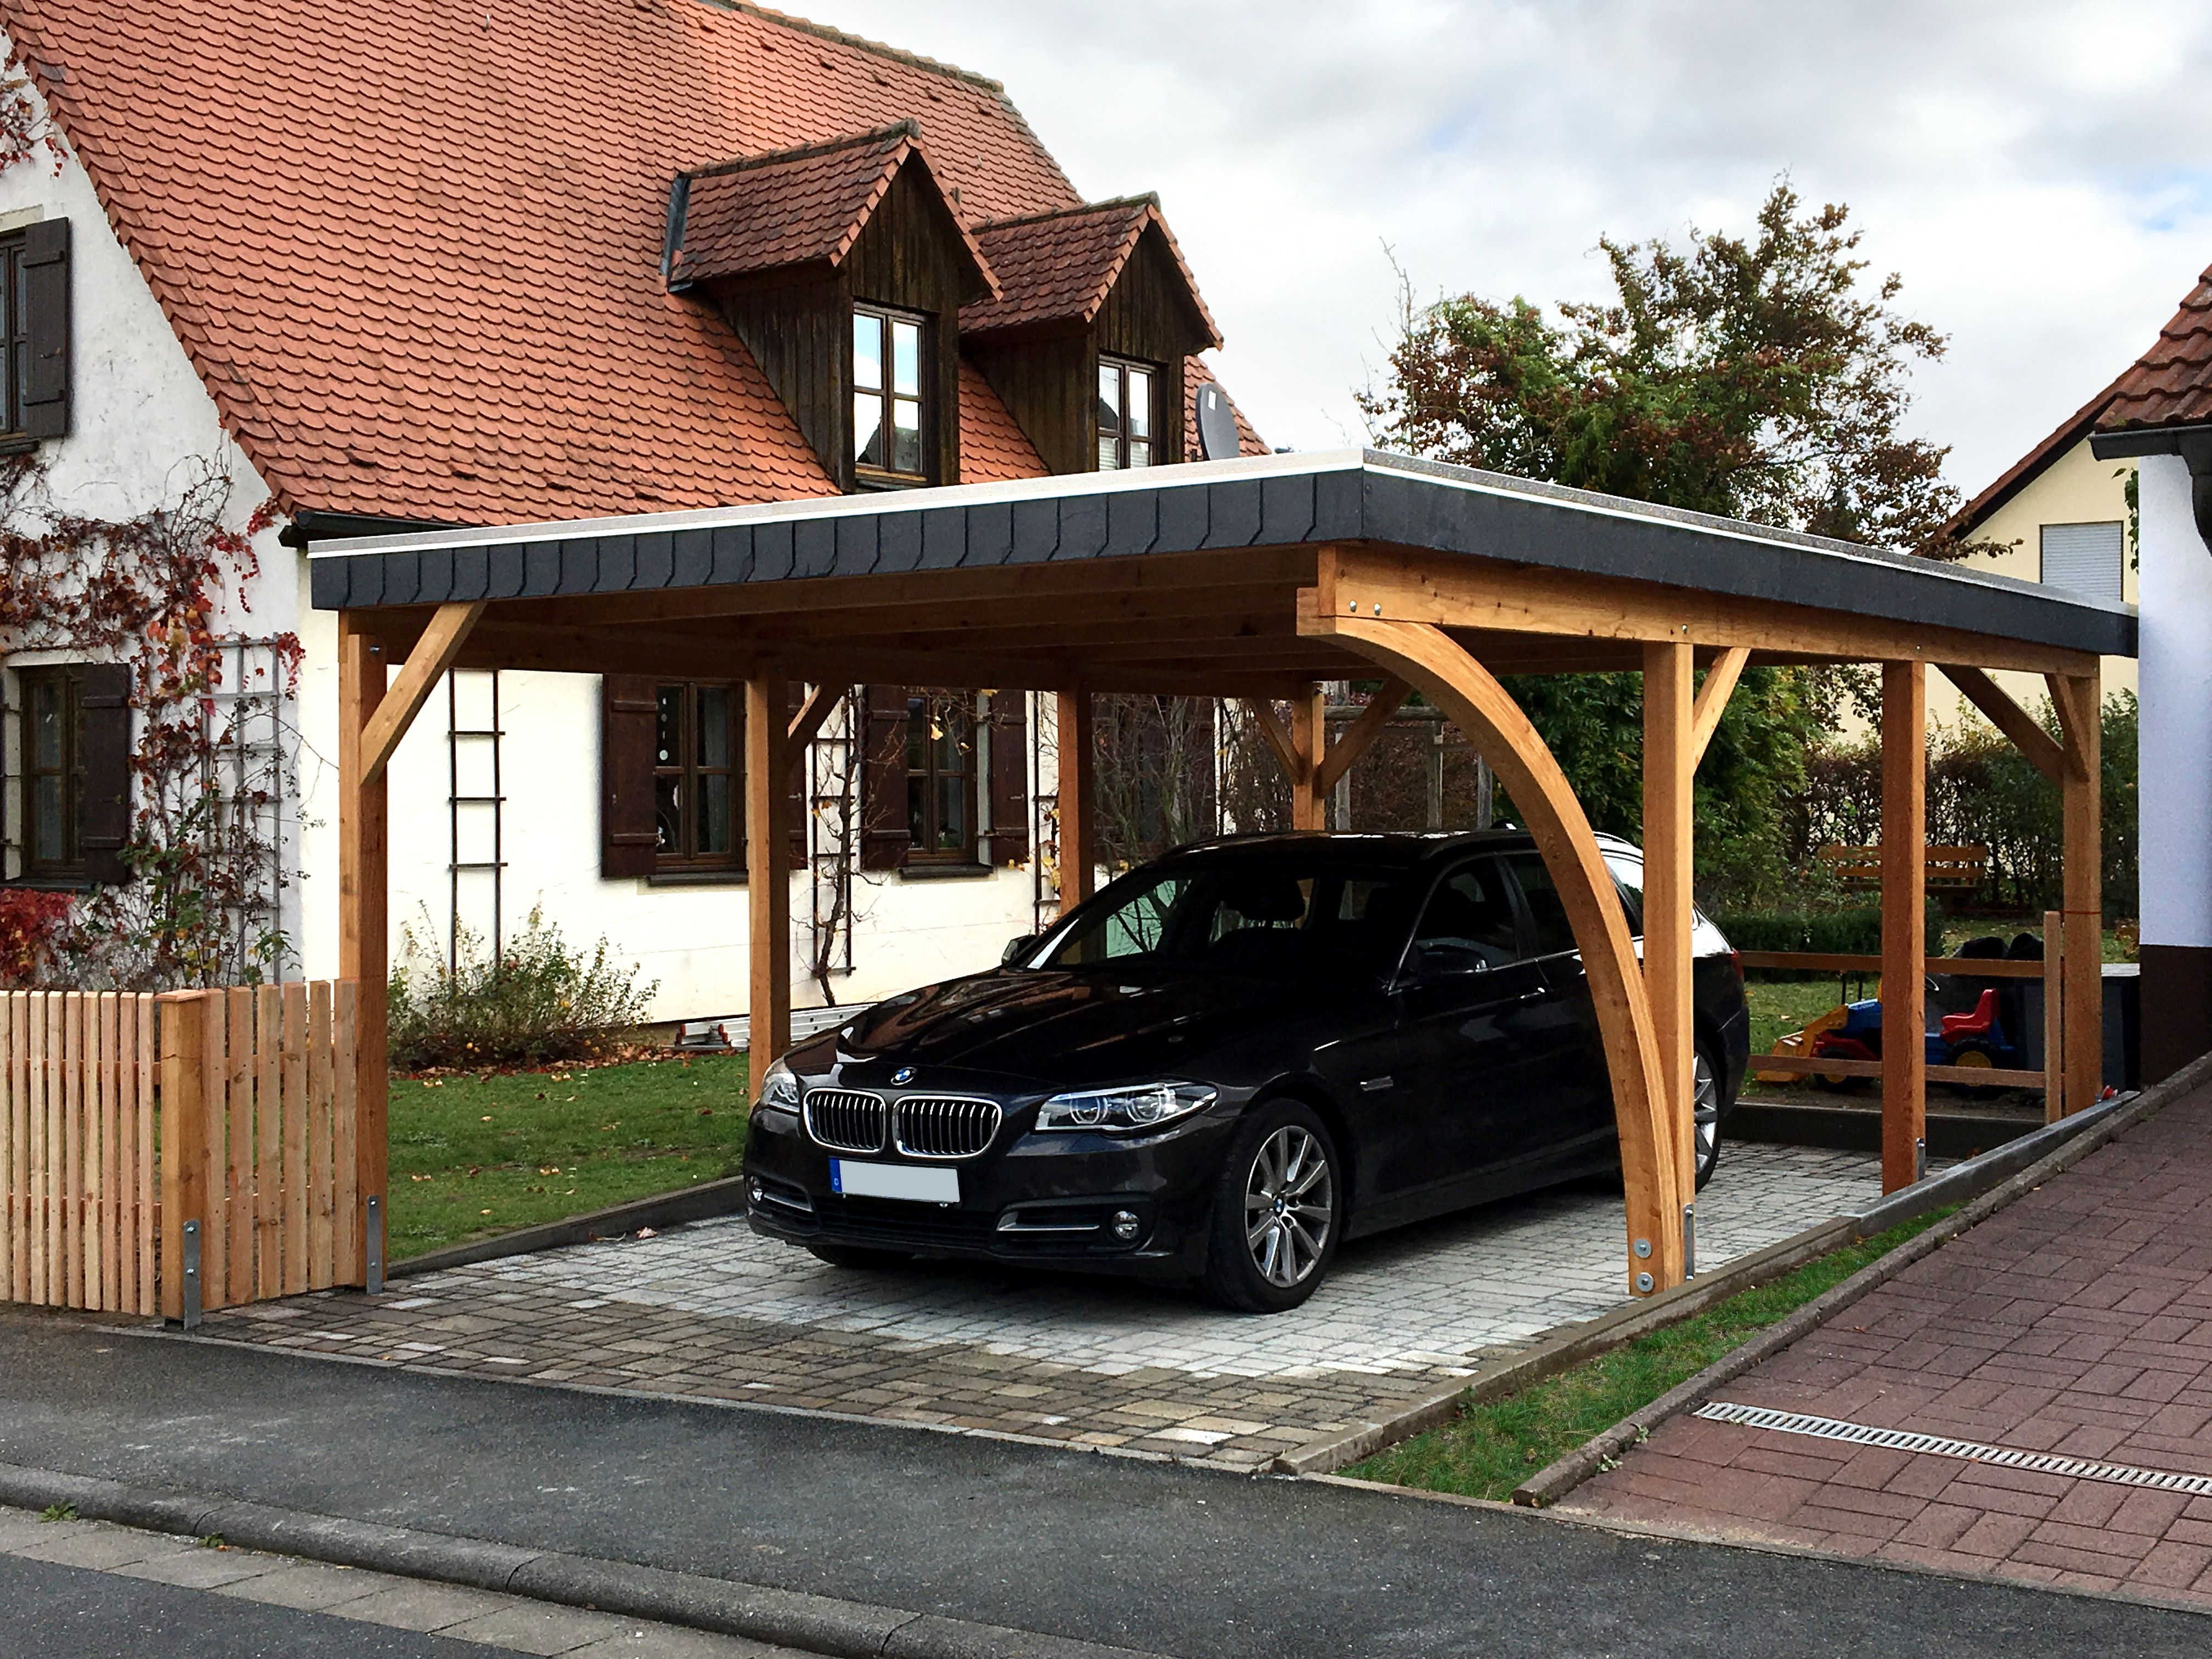 Carport In Larche 410x600 Cm Mit Einreighiger Schindelblende Echtschiefer Abdeckleiste Und Einem Leimhol Carport Designs Barn House Plans Metal Building Homes